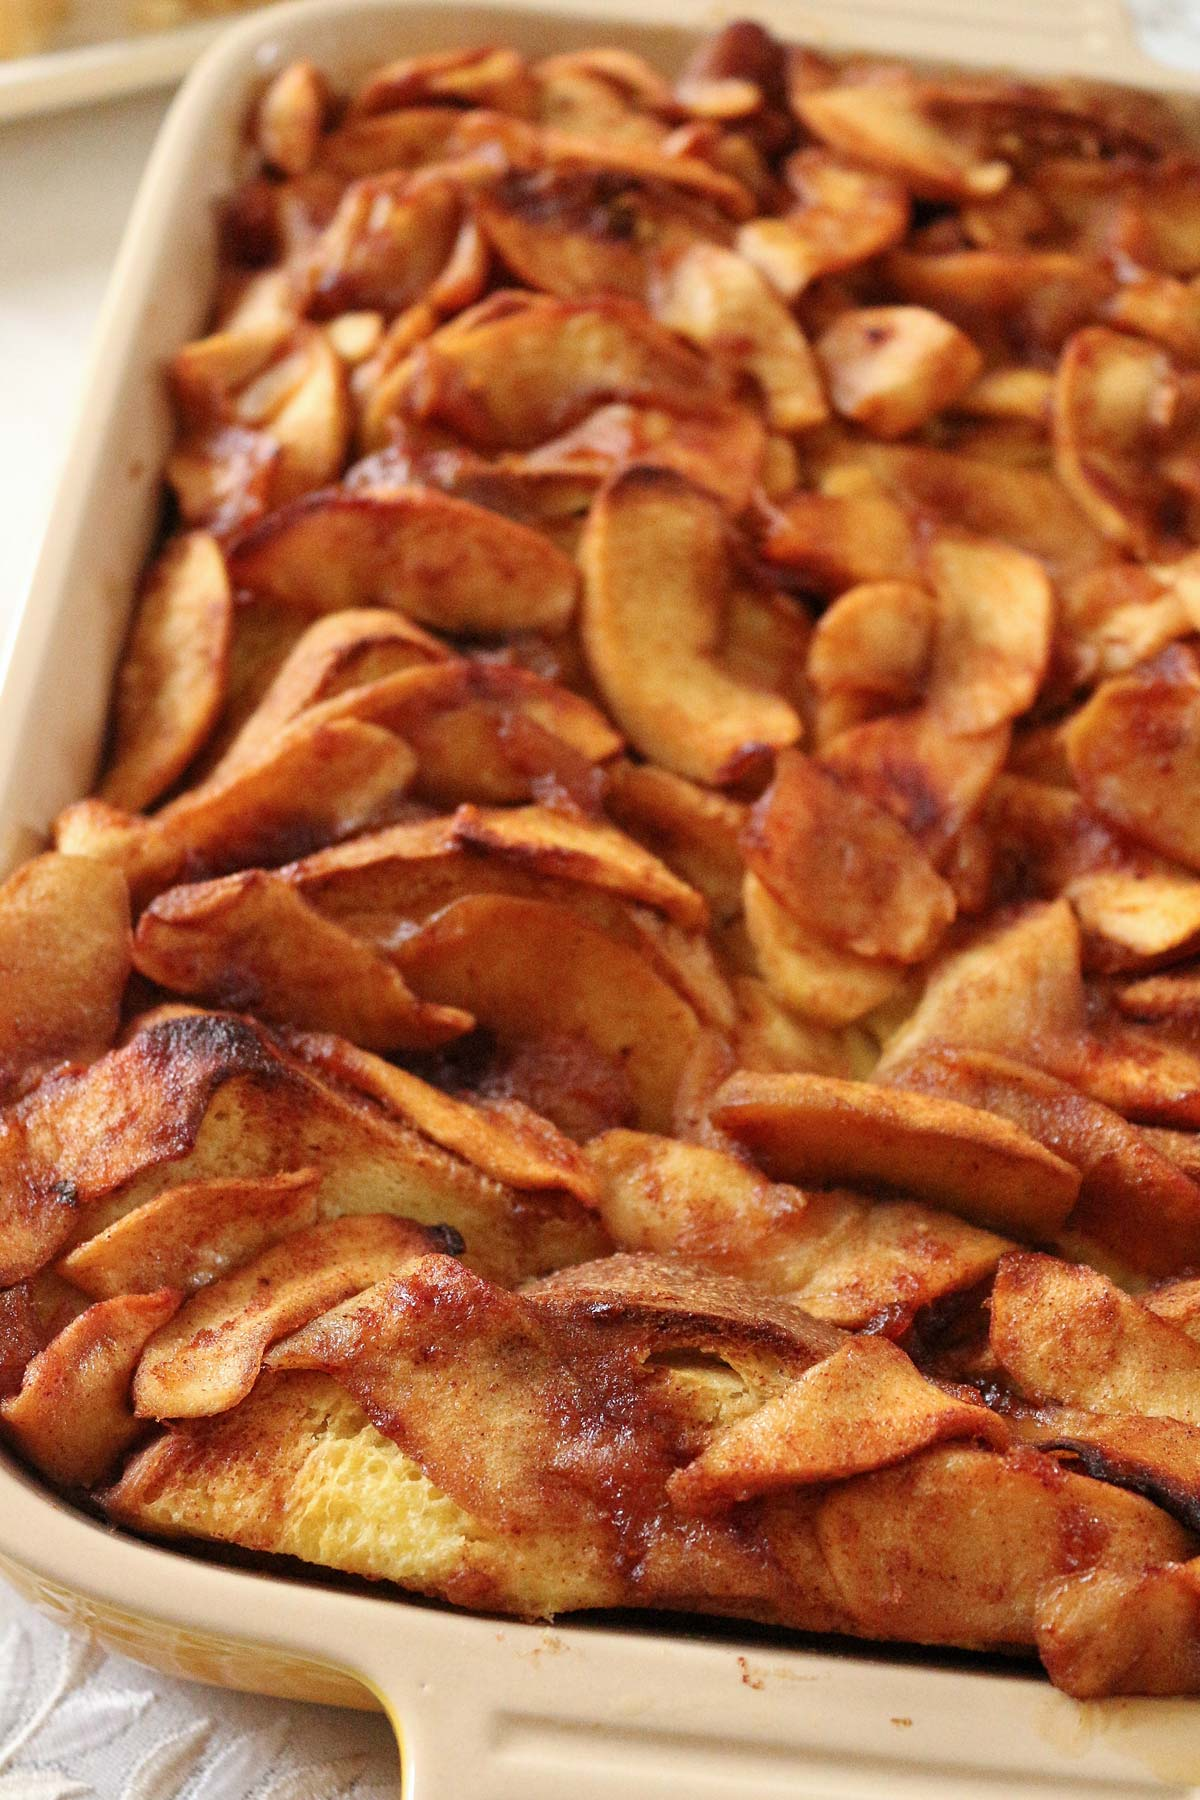 Closeup of baked apple french toast in a ceramic baking dish.